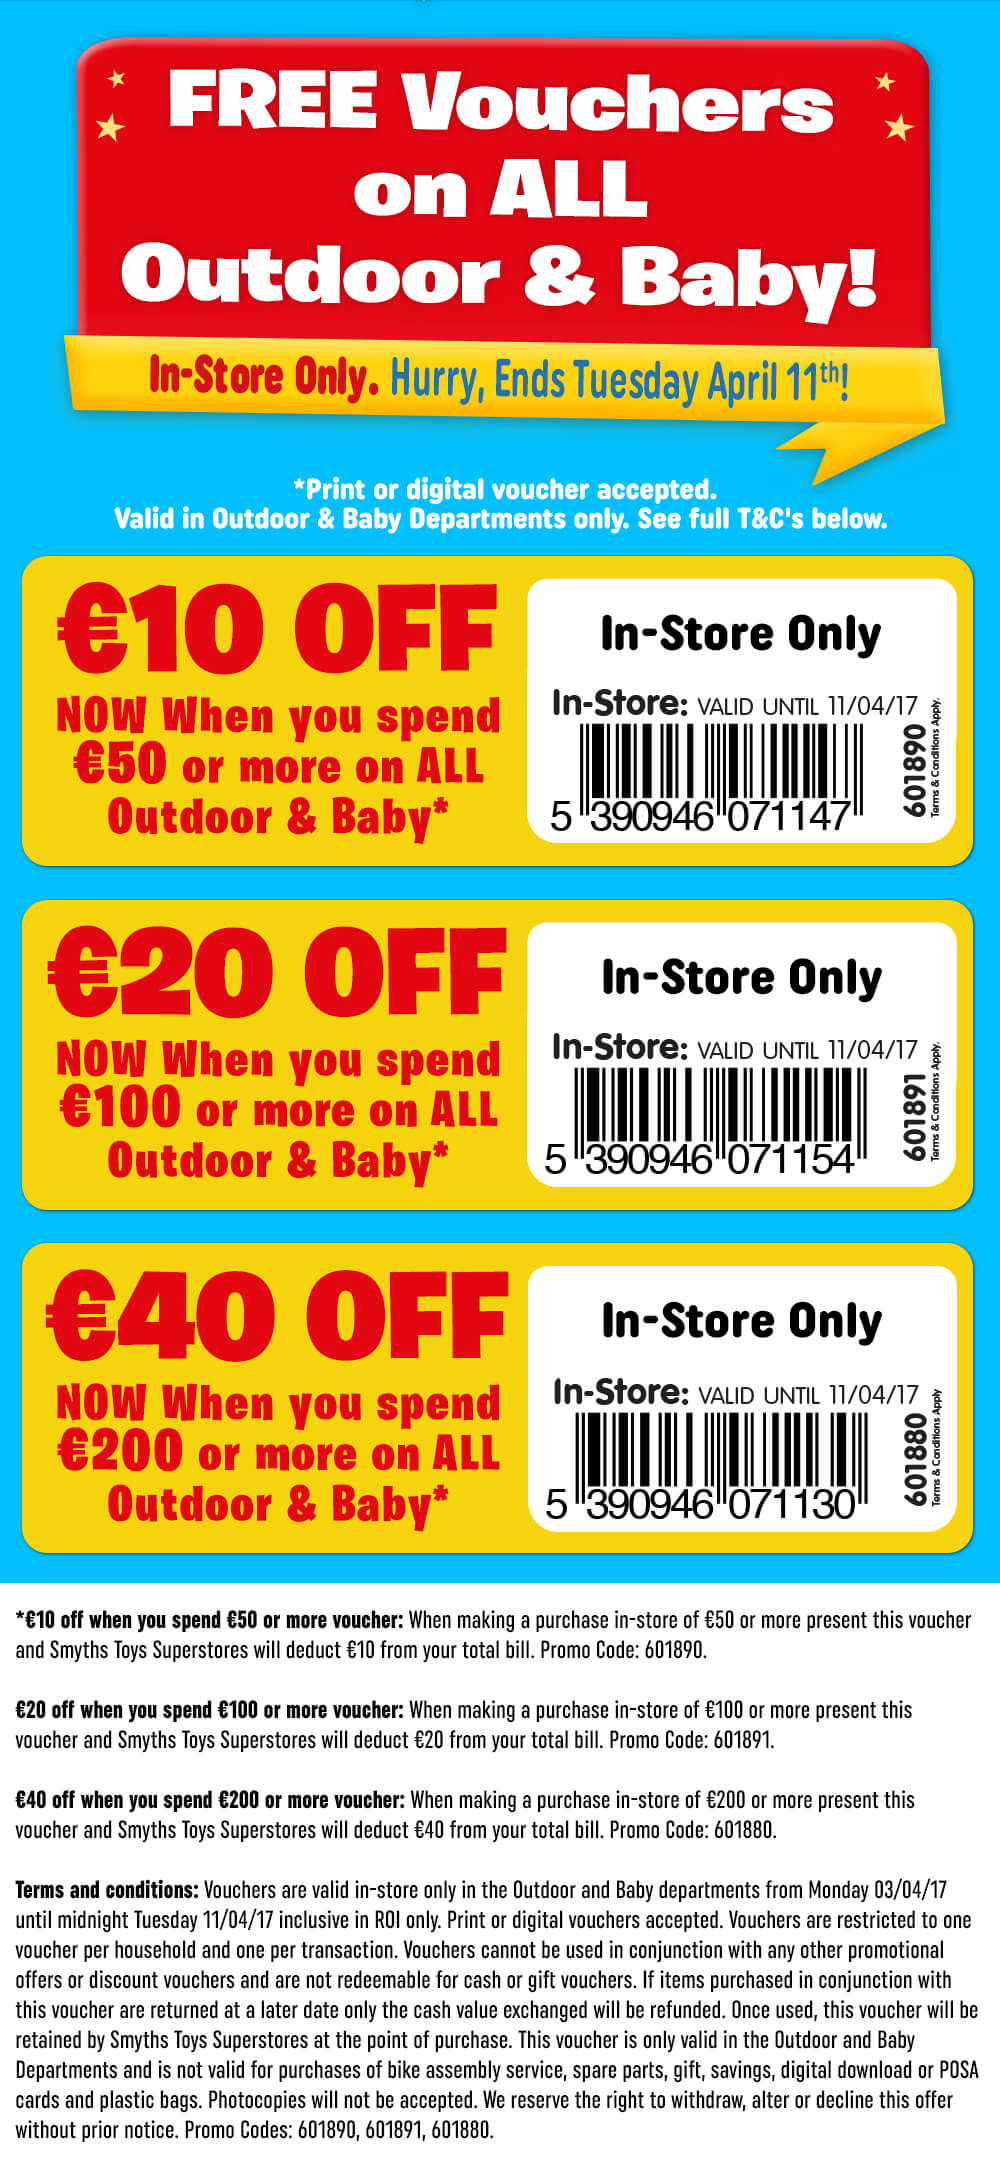 Smyths toys money off coupons